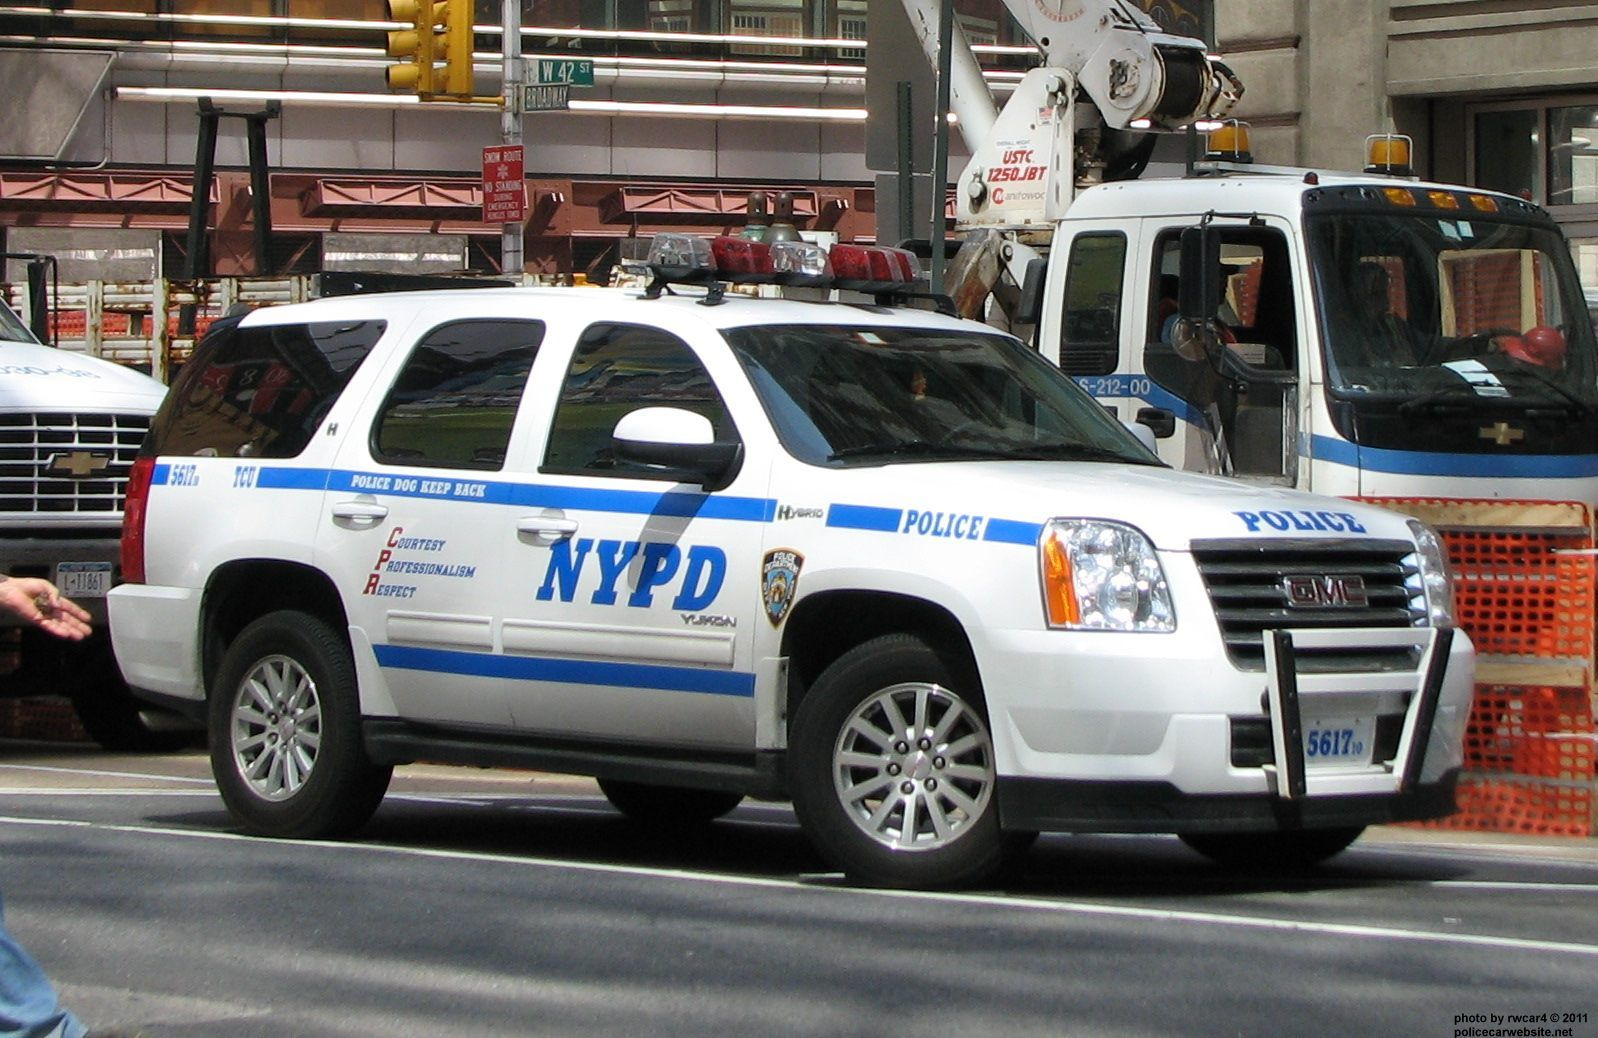 Nypd Gmc Yukon K9 Unit Jpm Entertainment Old Police Cars Police Cars Gmc Vehicles